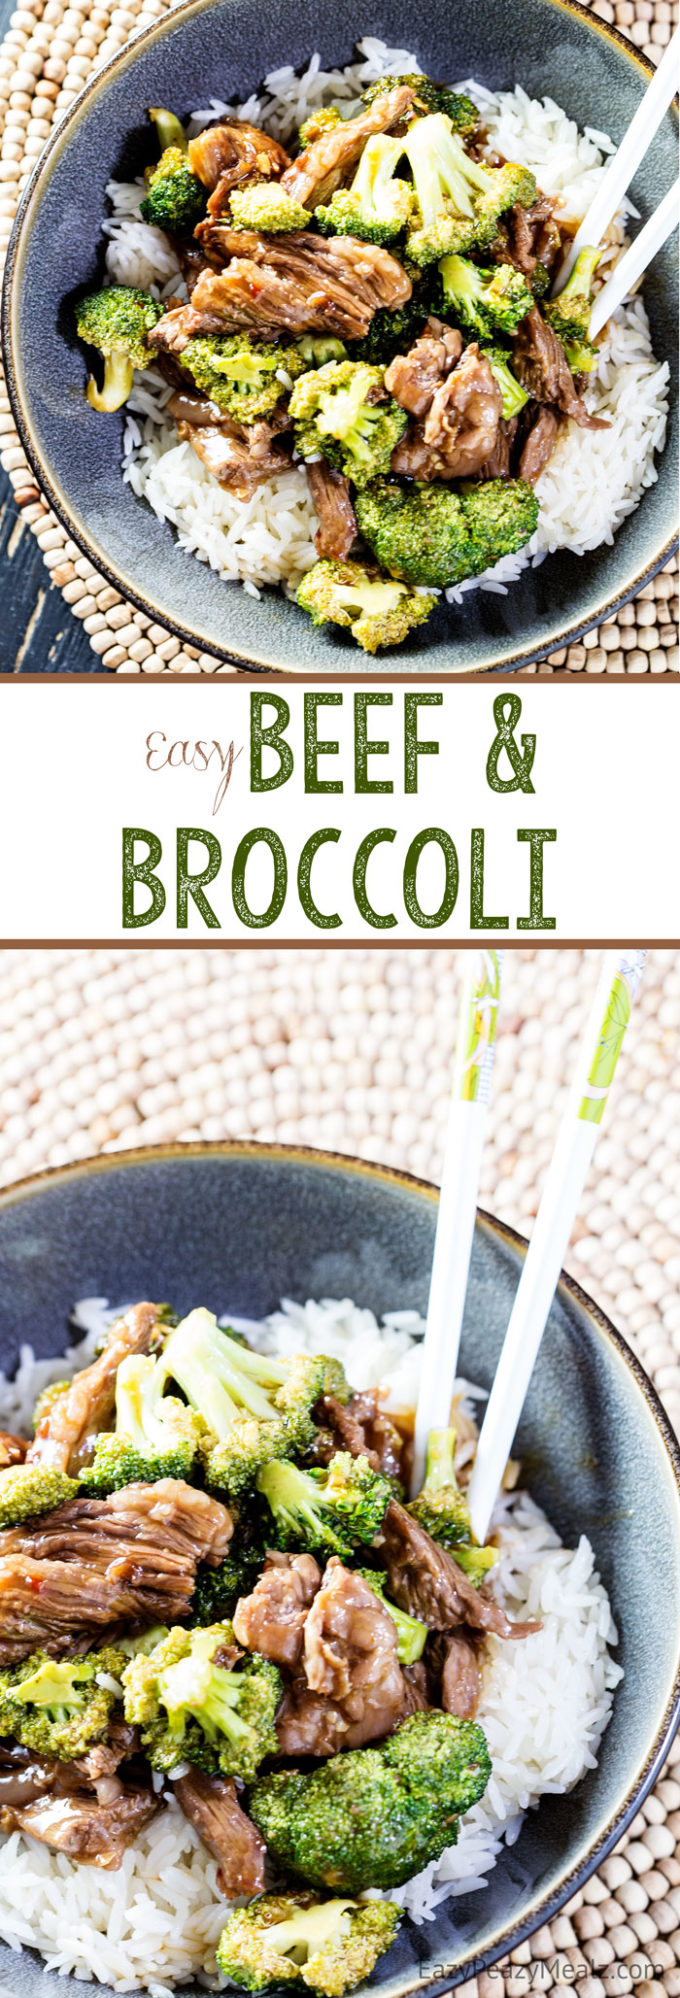 Easy beef and broccoli is a family favorite. It can be made in 20 minutes, and has insane flavor. Yum!